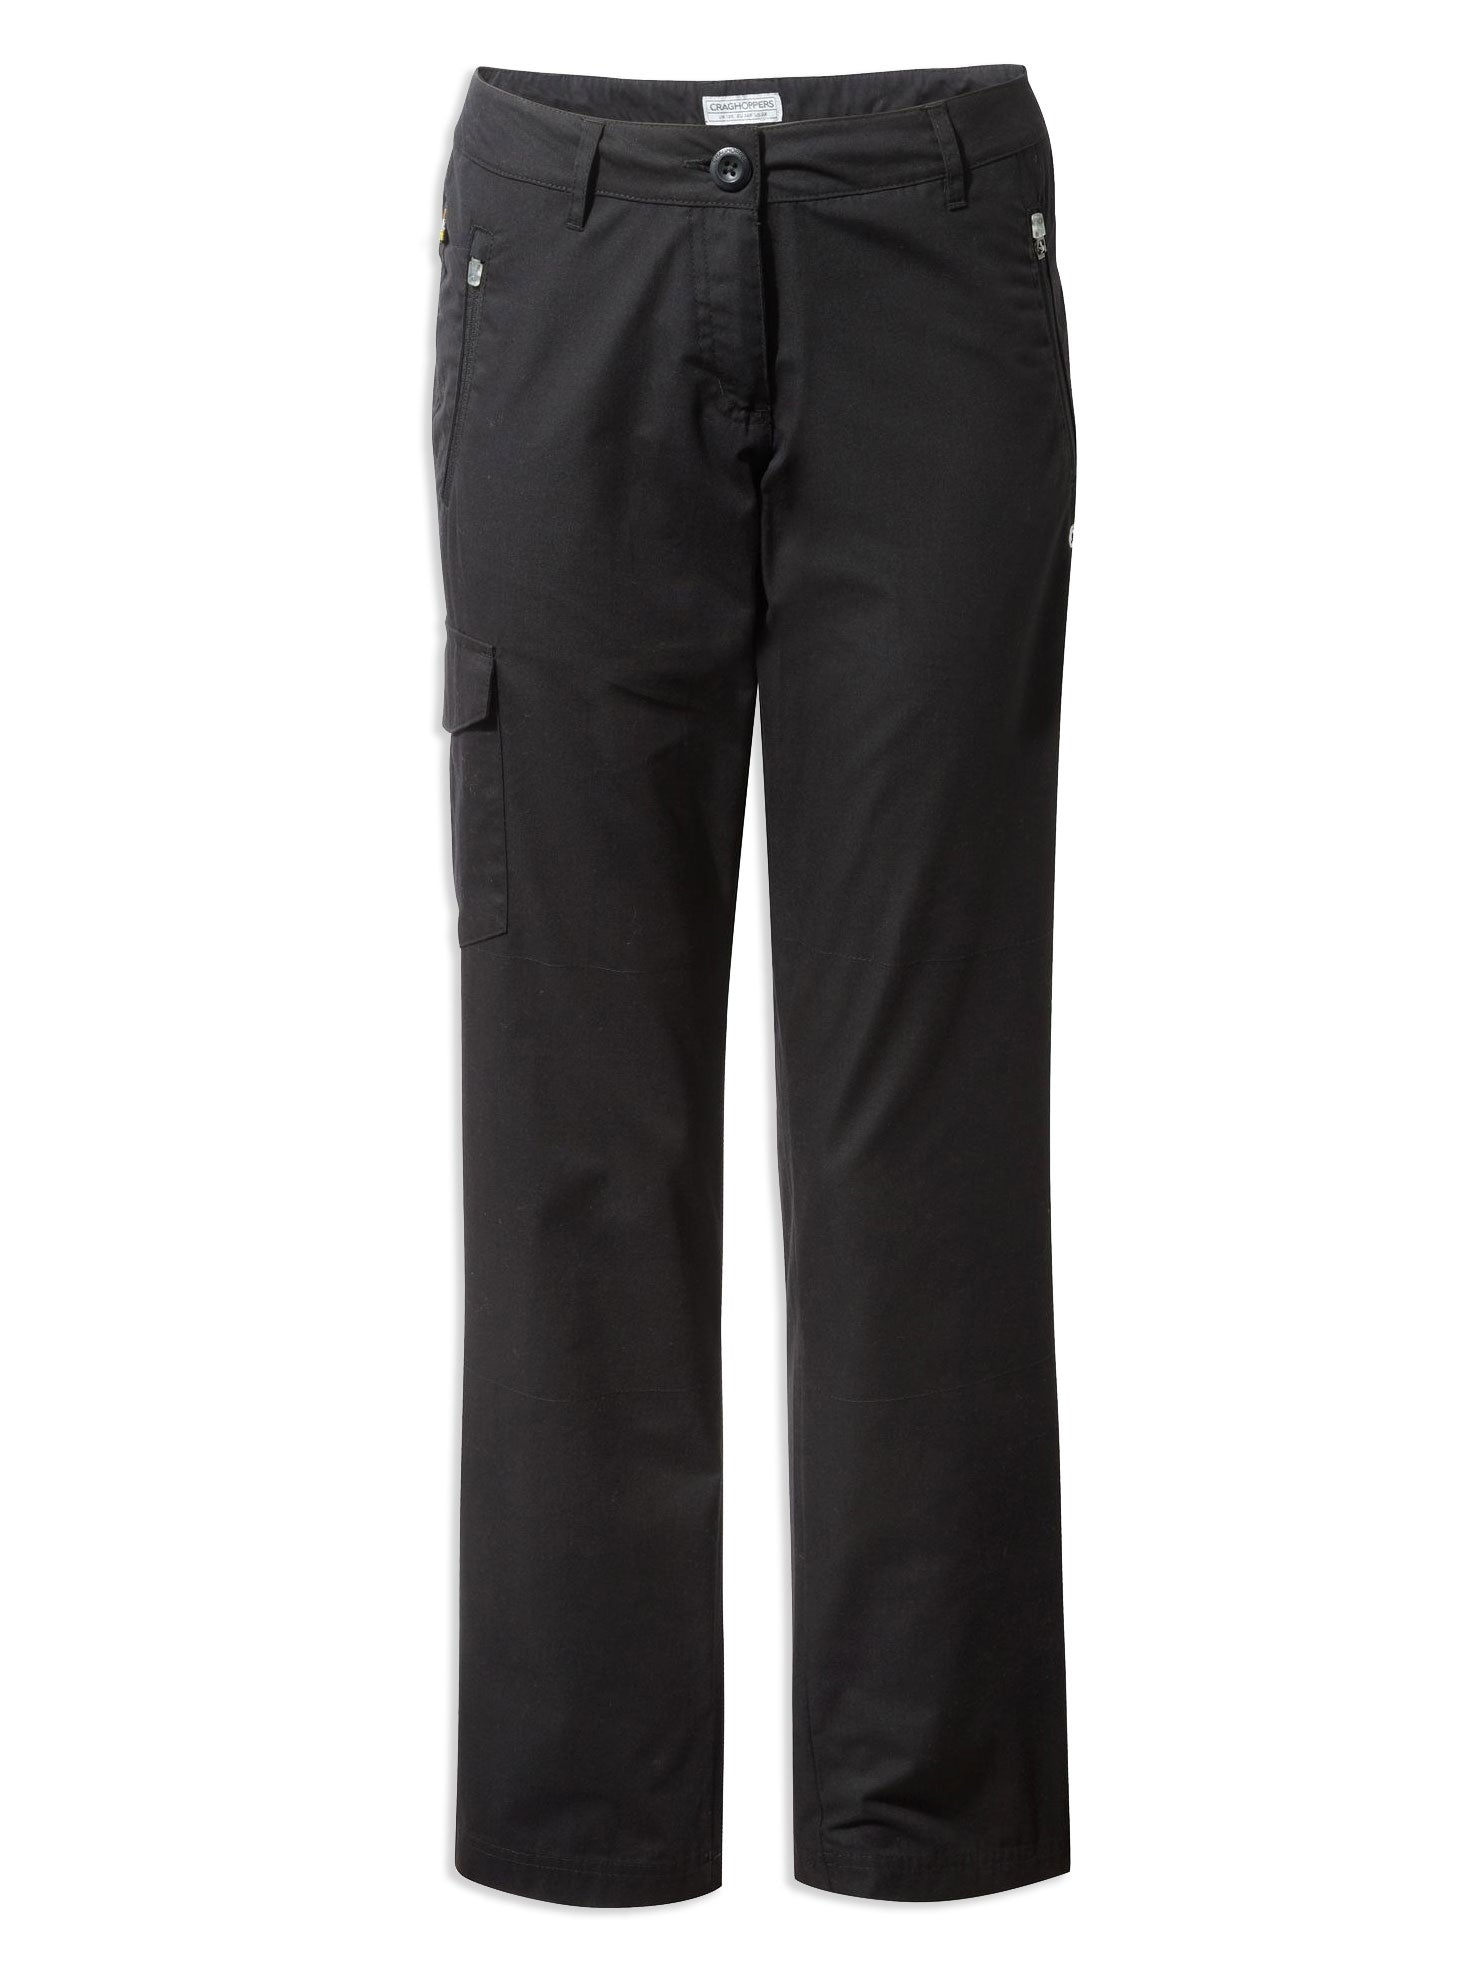 Craghoppers Women's Traverse Trousers | Black